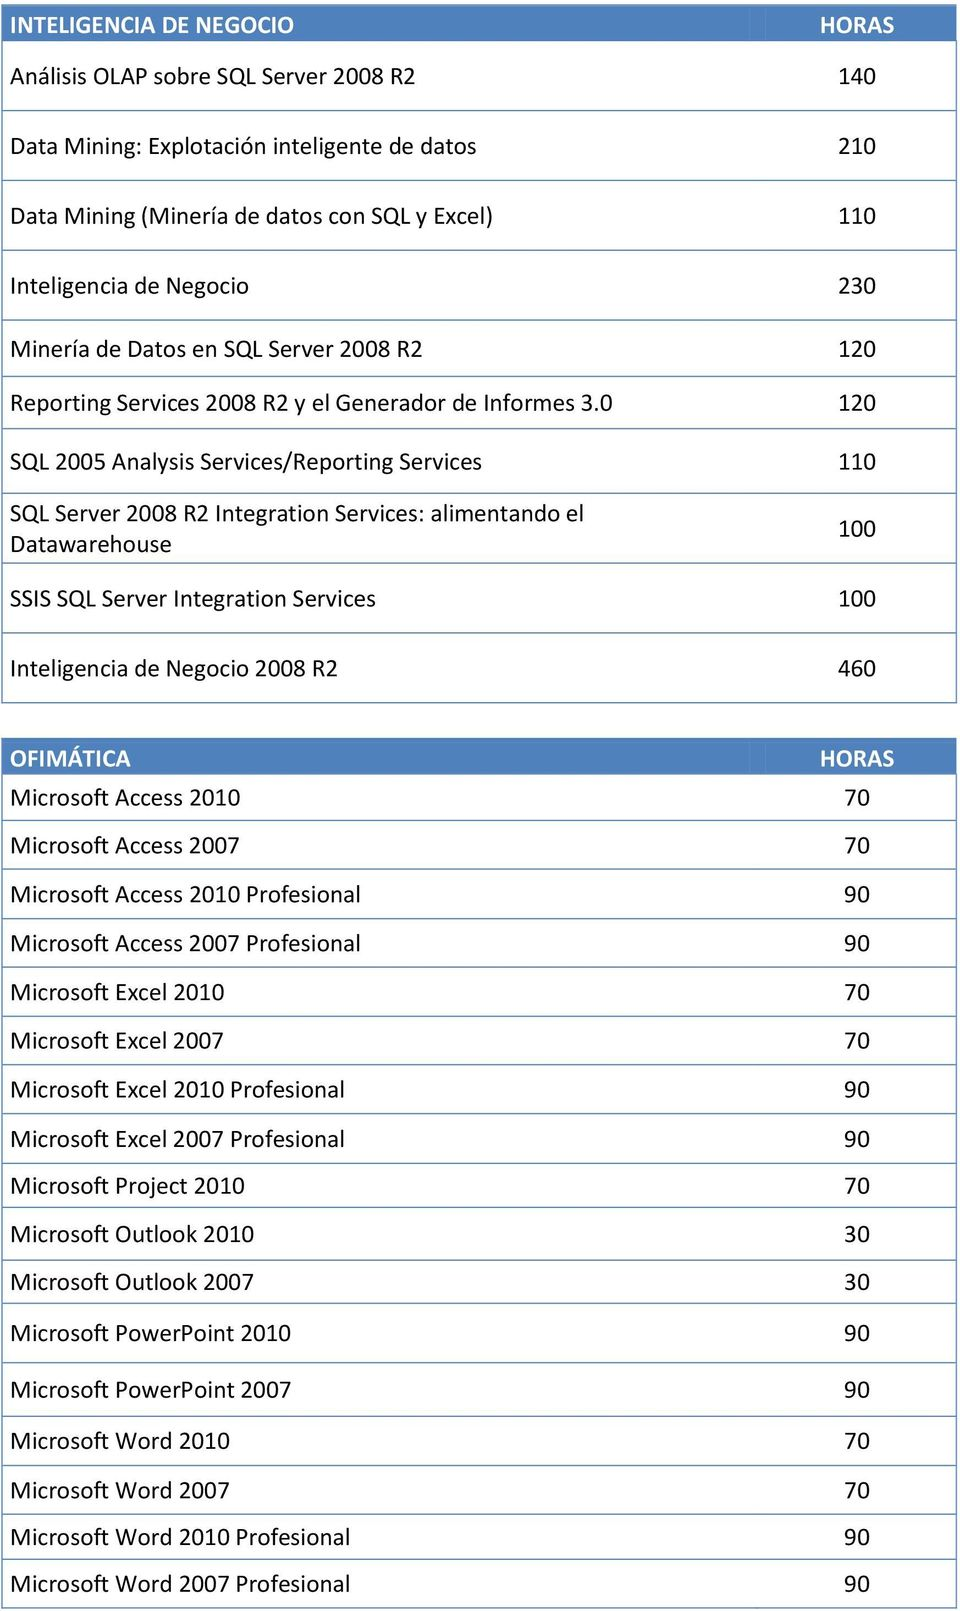 0 120 SQL 2005 Analysis Services/Reporting Services 110 SQL Server 2008 R2 Integration Services: alimentando el Datawarehouse 100 SSIS SQL Server Integration Services 100 Inteligencia de Negocio 2008